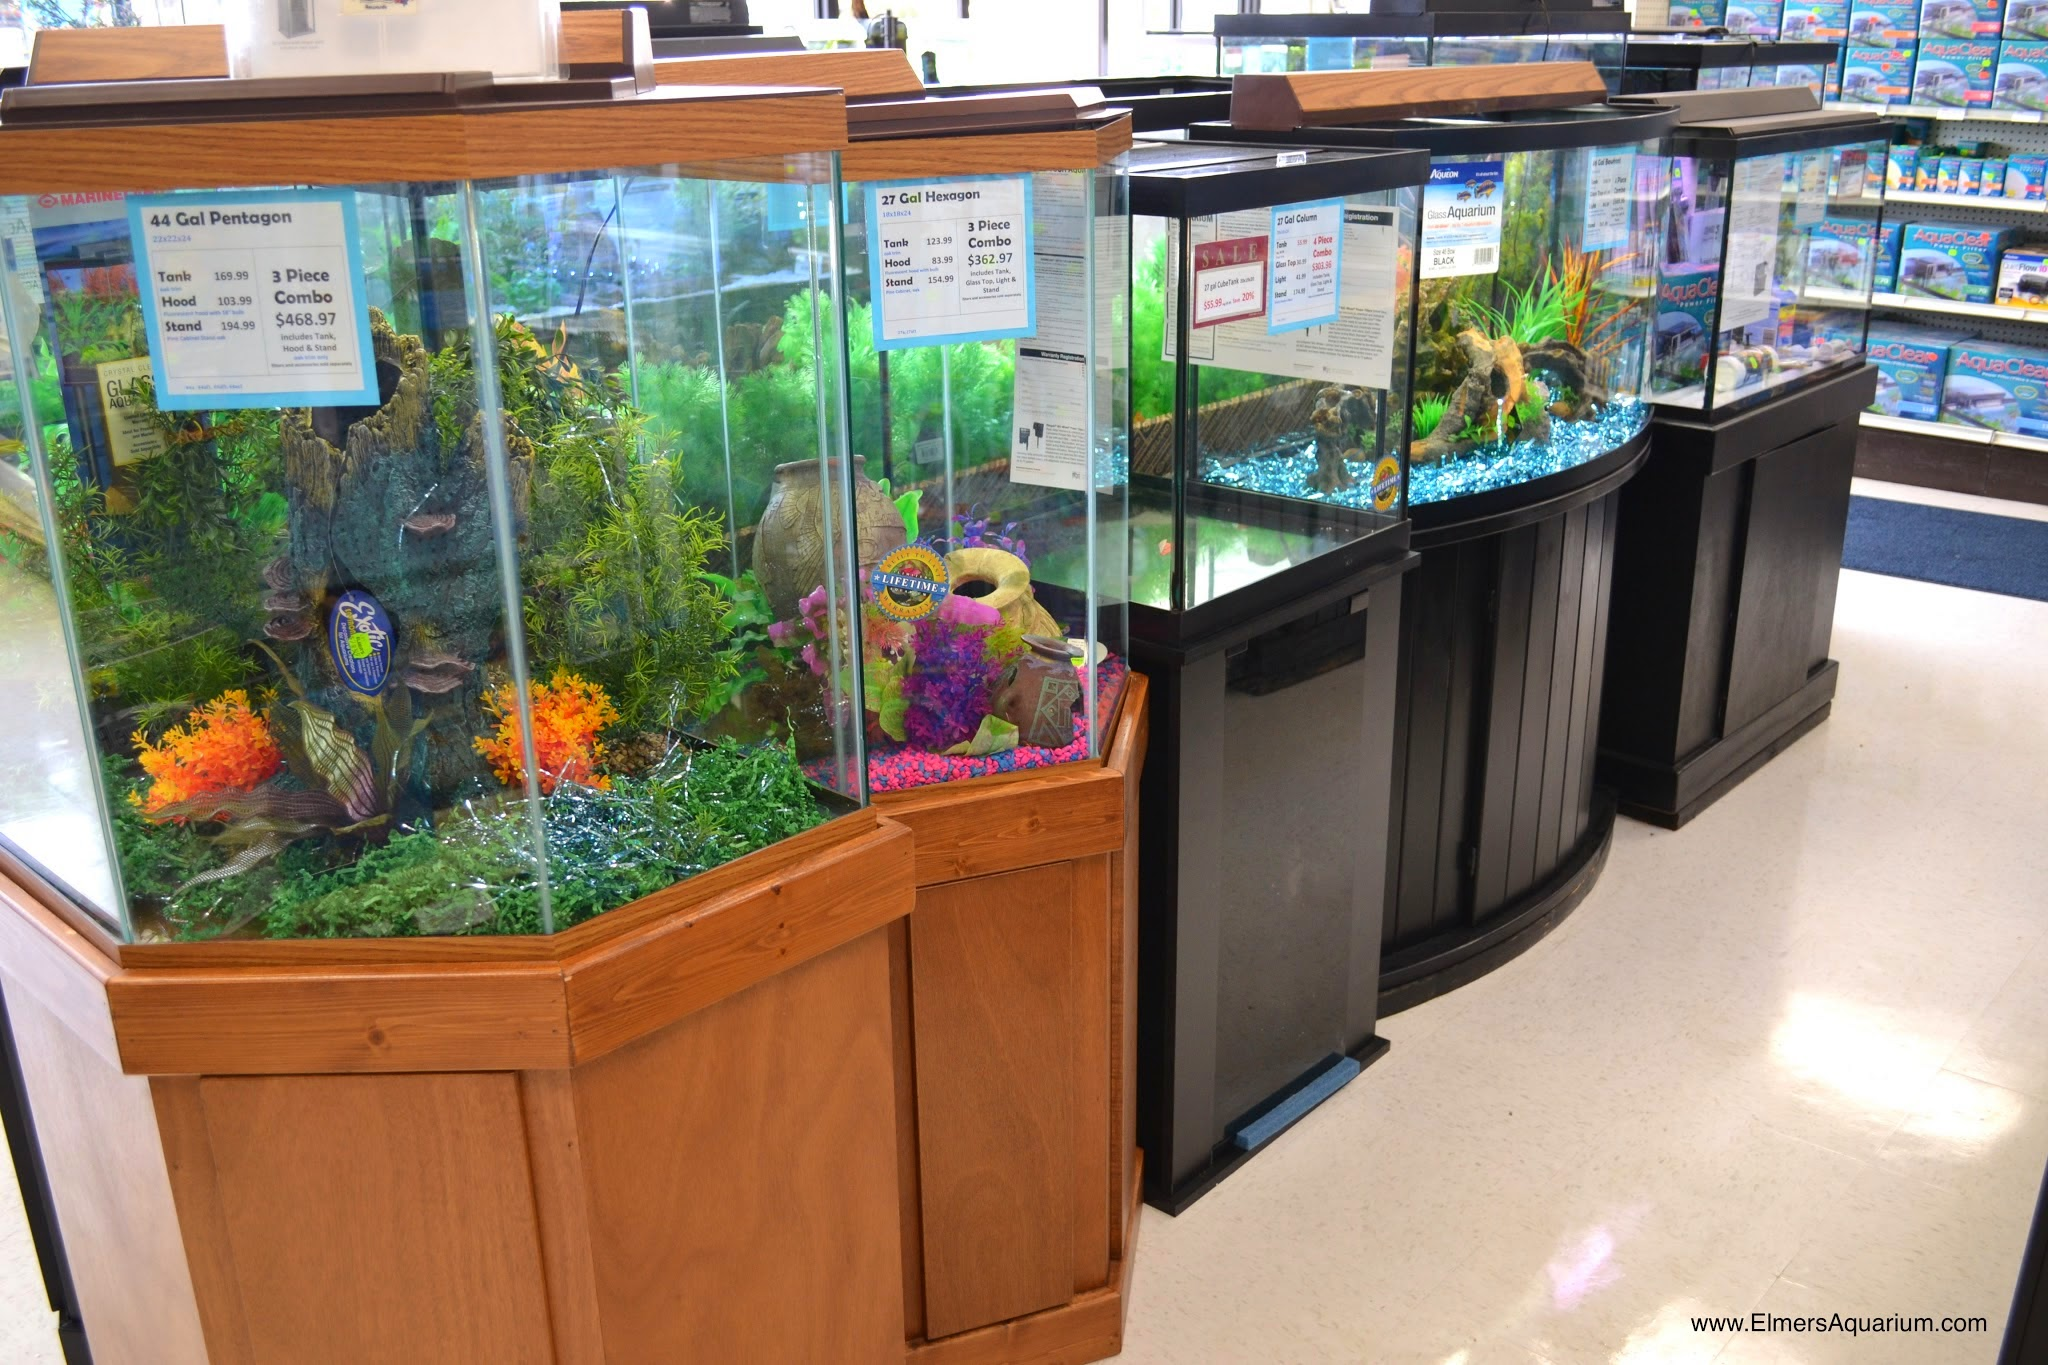 27 Gallon Hexagon Aquarium Hood 1000 Ideas